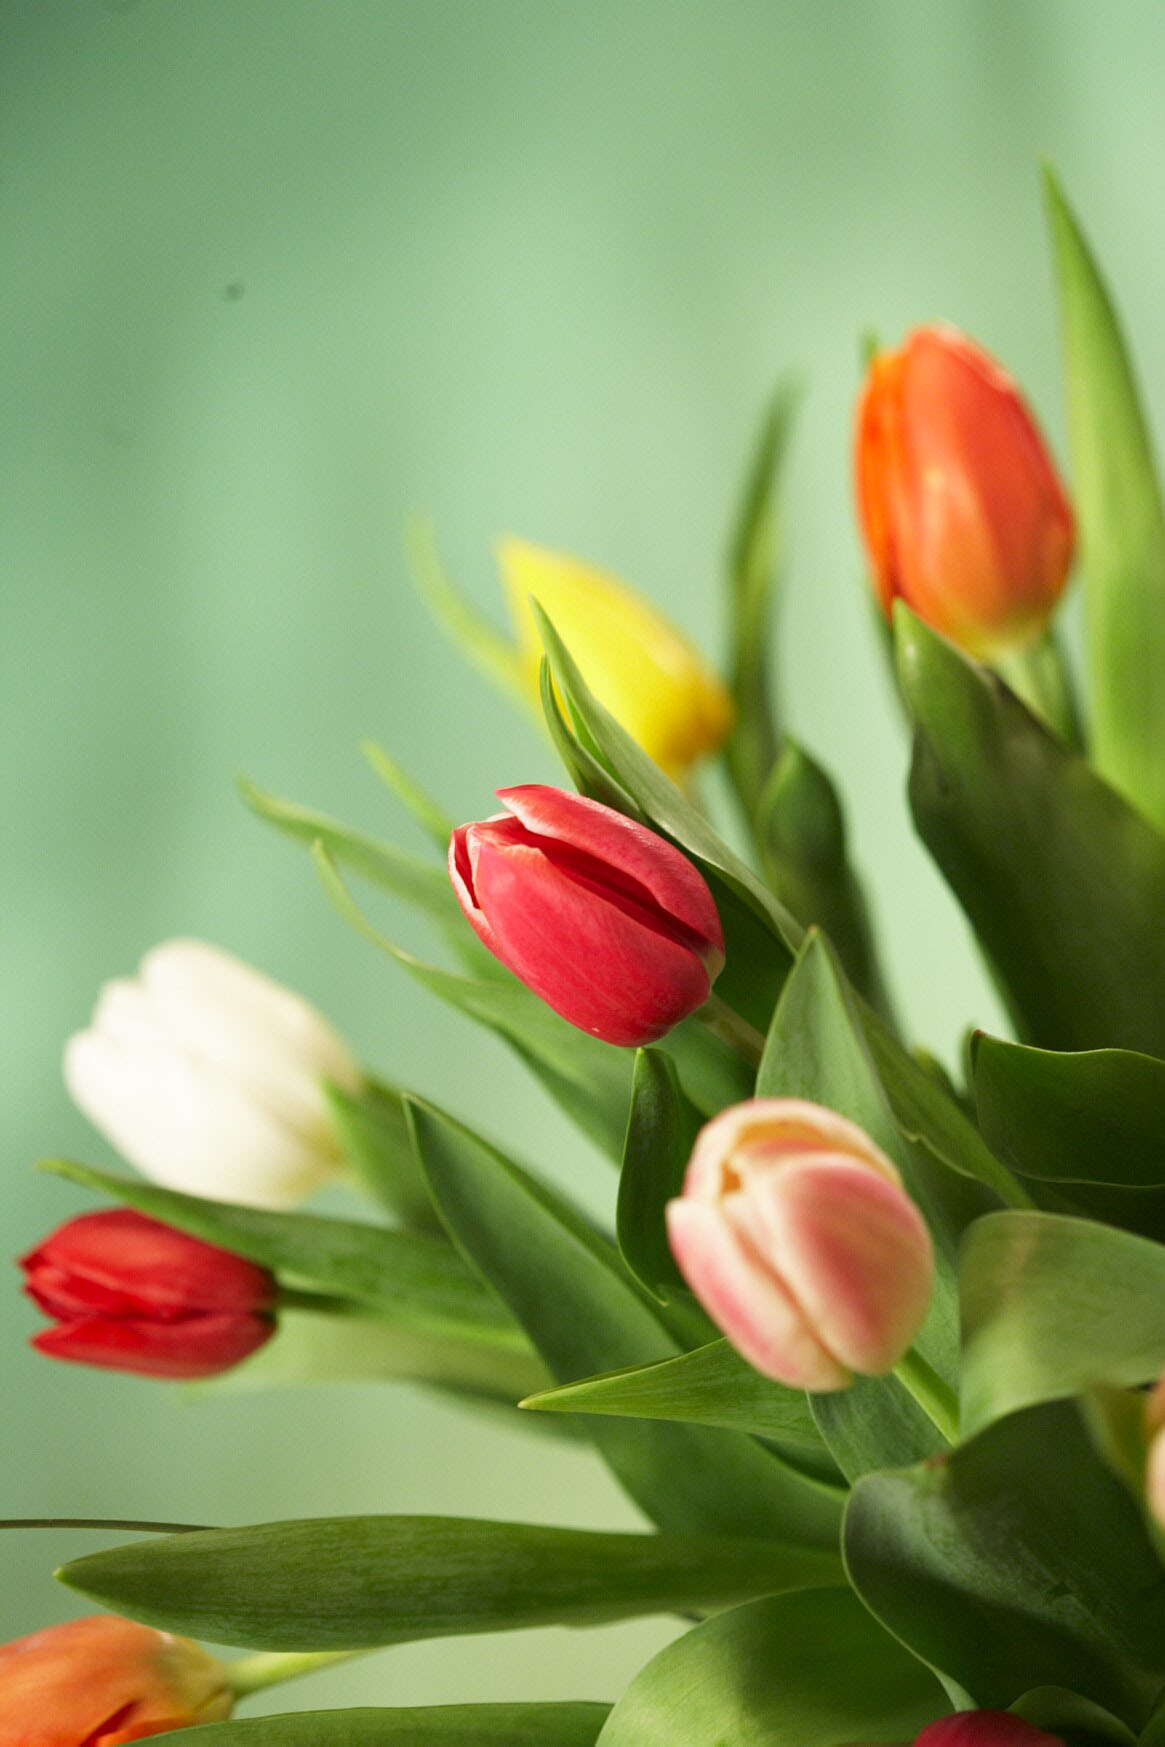 tulip information from flowers.uk, Beautiful flower